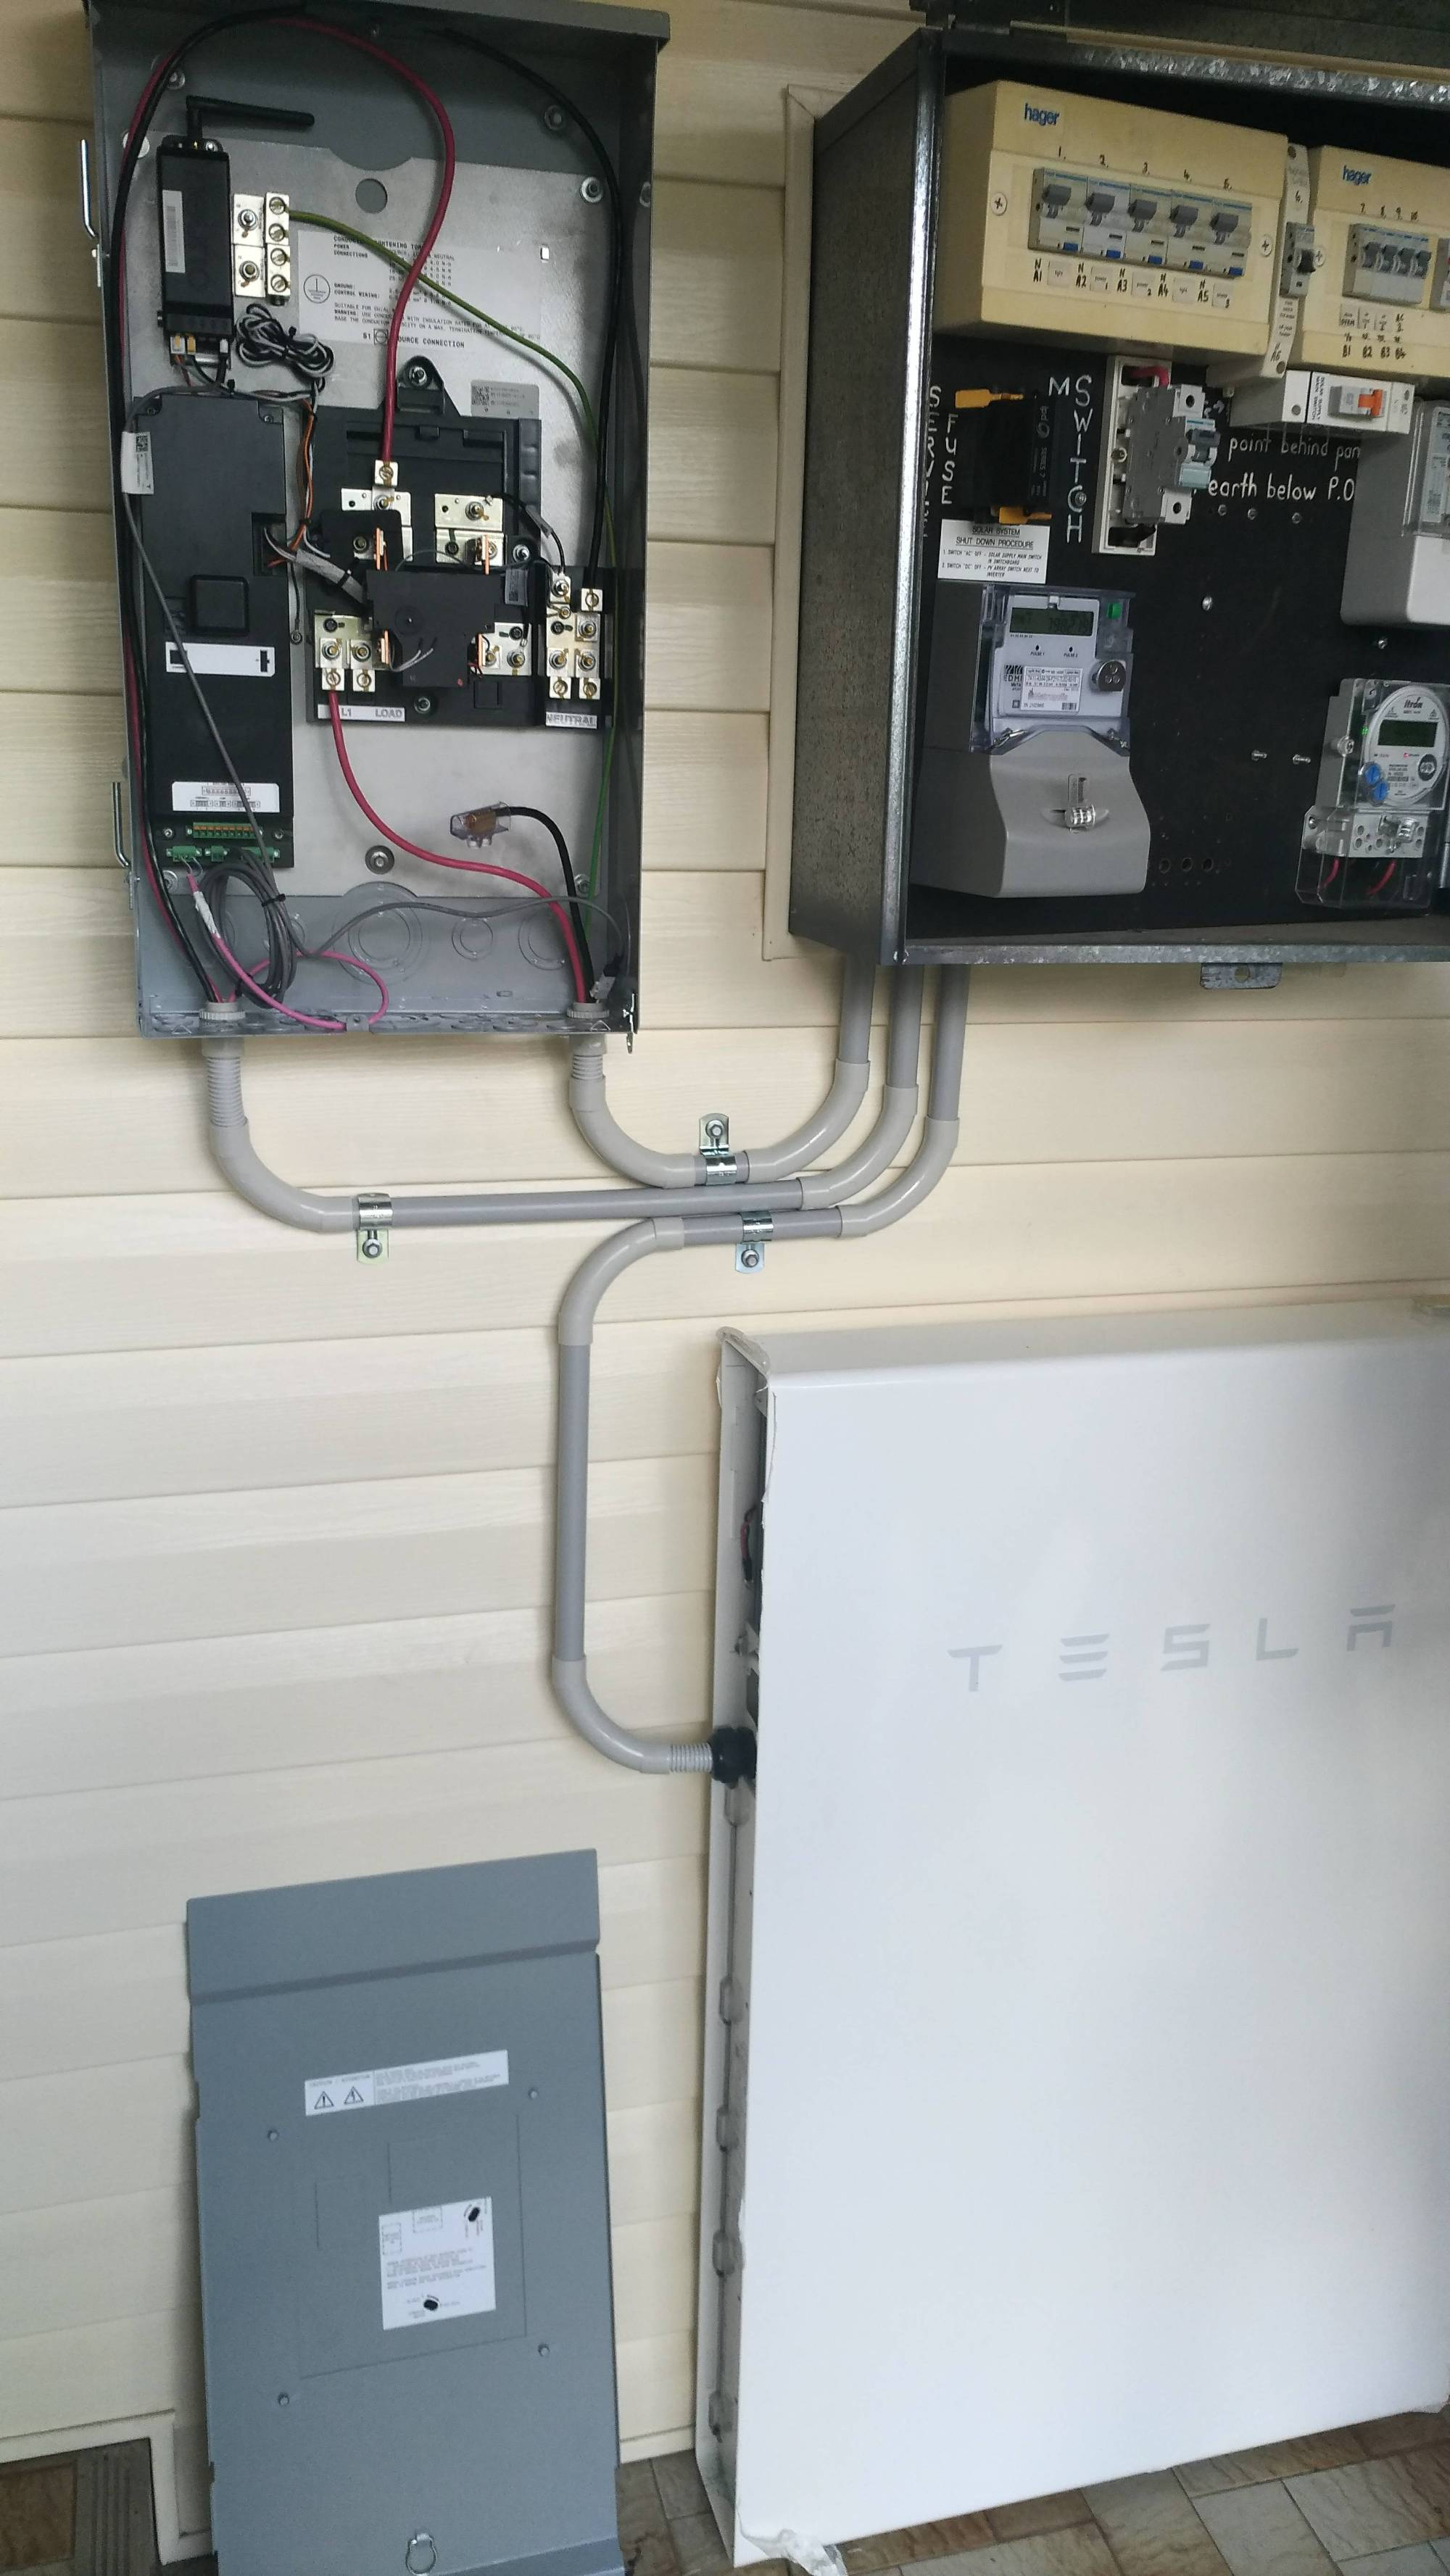 hight resolution of then it was tesla s turned to activate the device